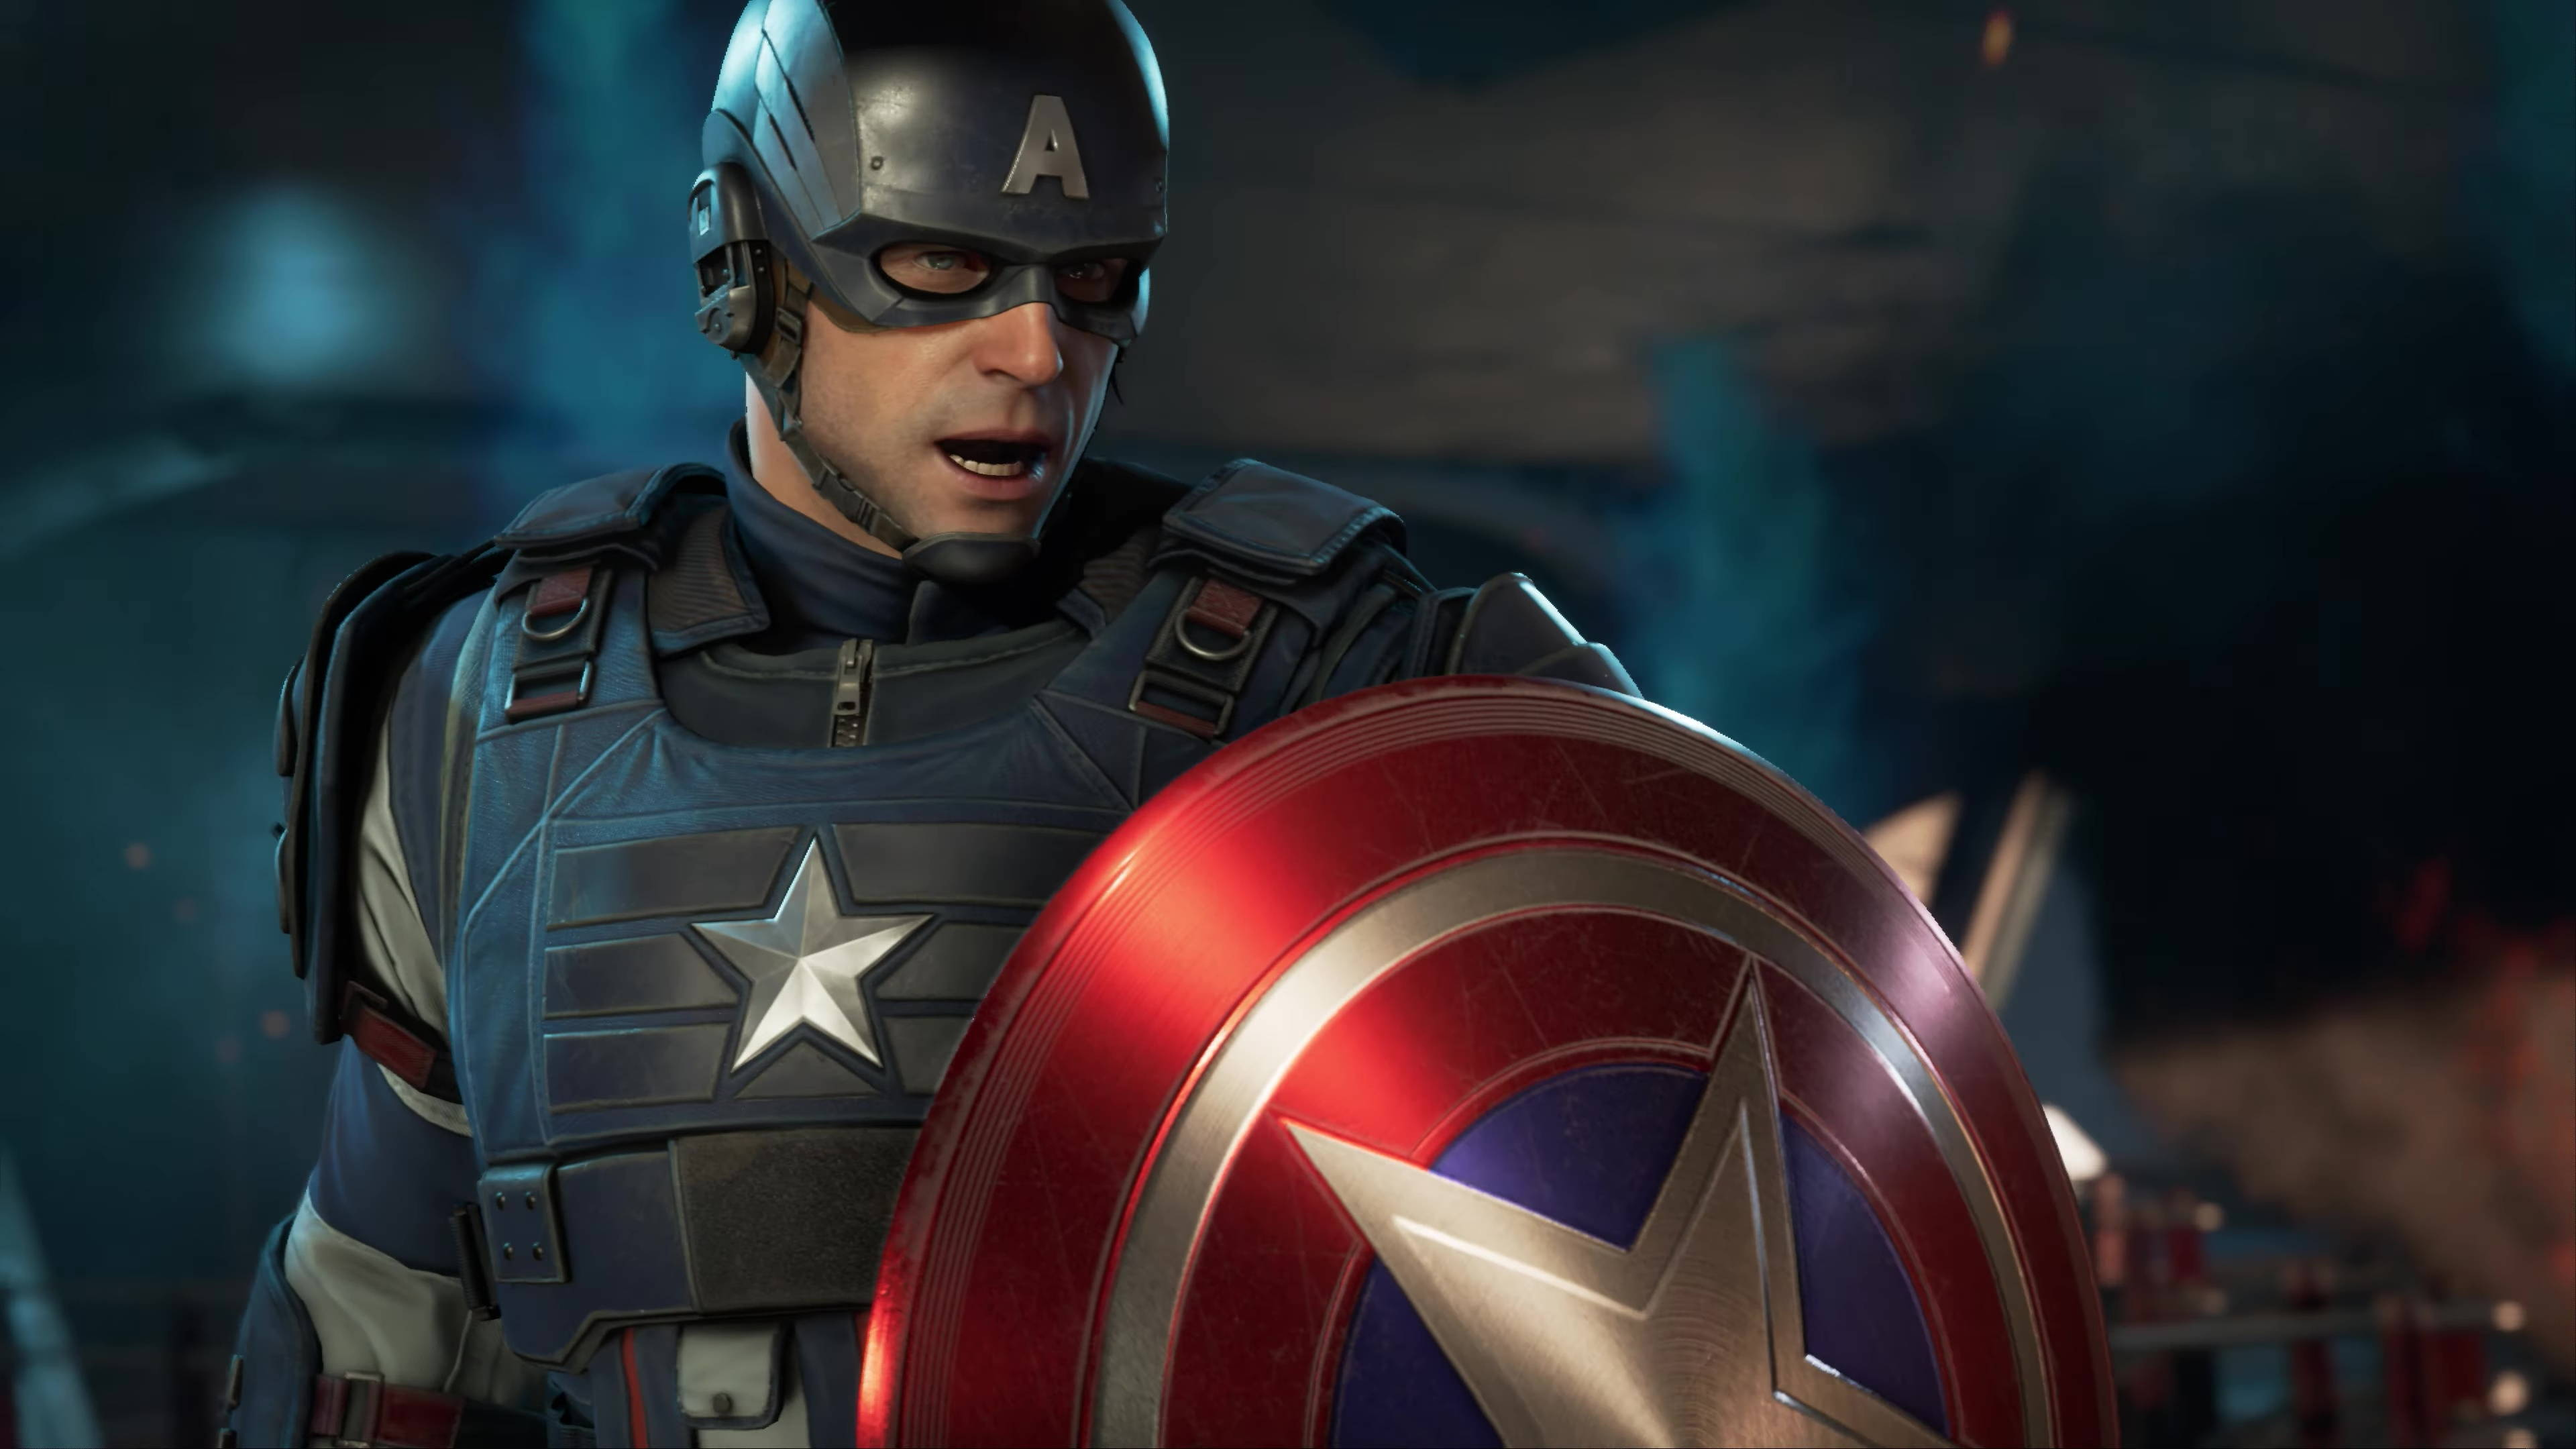 Marvel's Avengers tries to capture sentiments of patriotism and of fighting for freedom into their designs